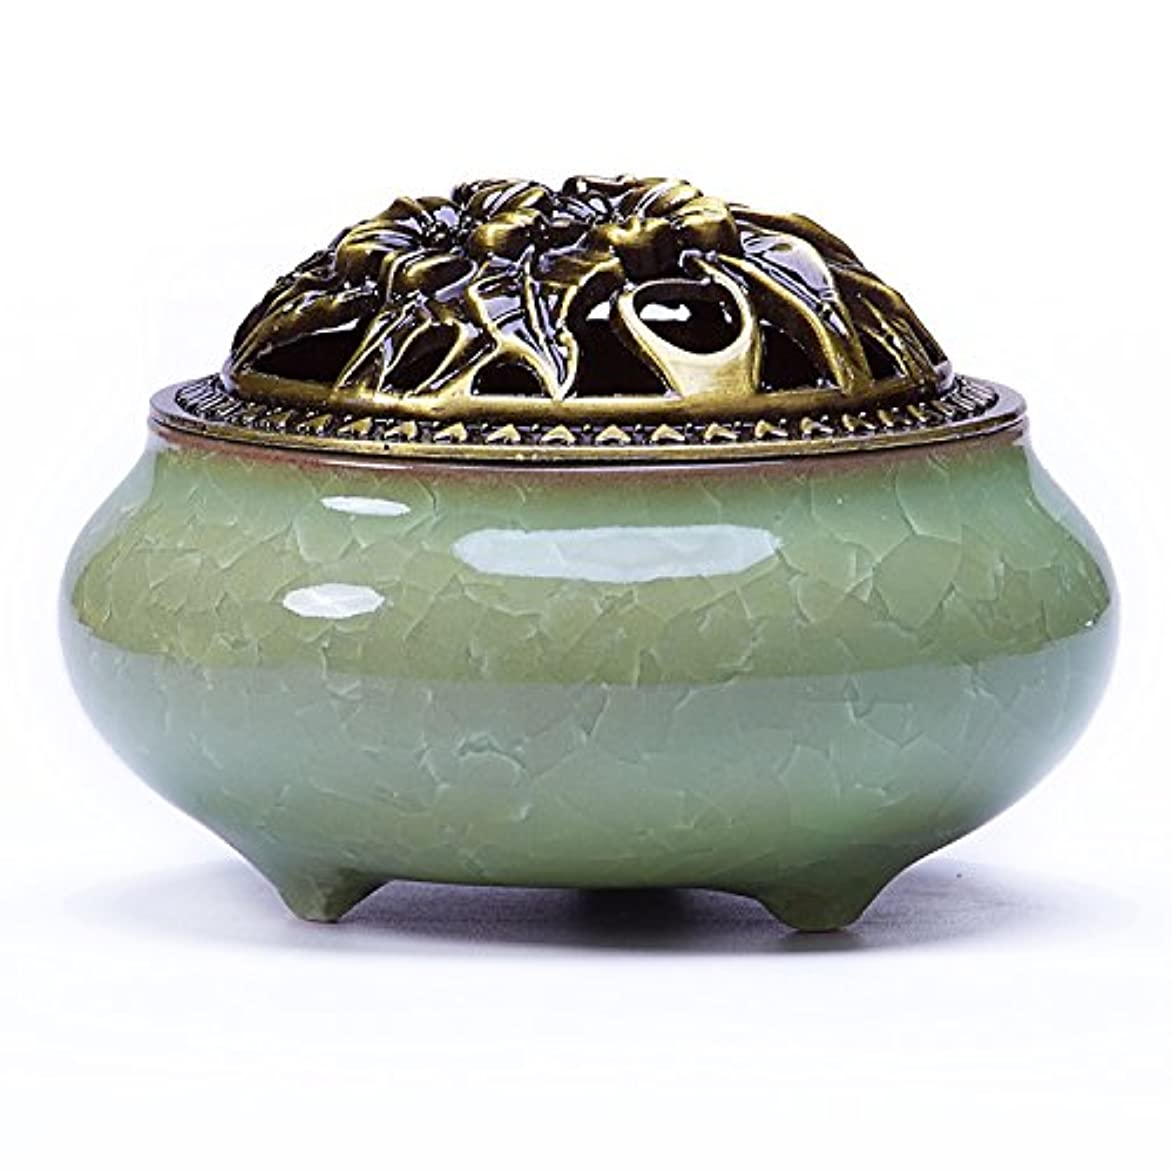 花束賞賛ダルセットUoonハンドメイドCone Incense Burner with真鍮Calabashホルダーfor Stick Incense and Coin Incense UOON-BL001